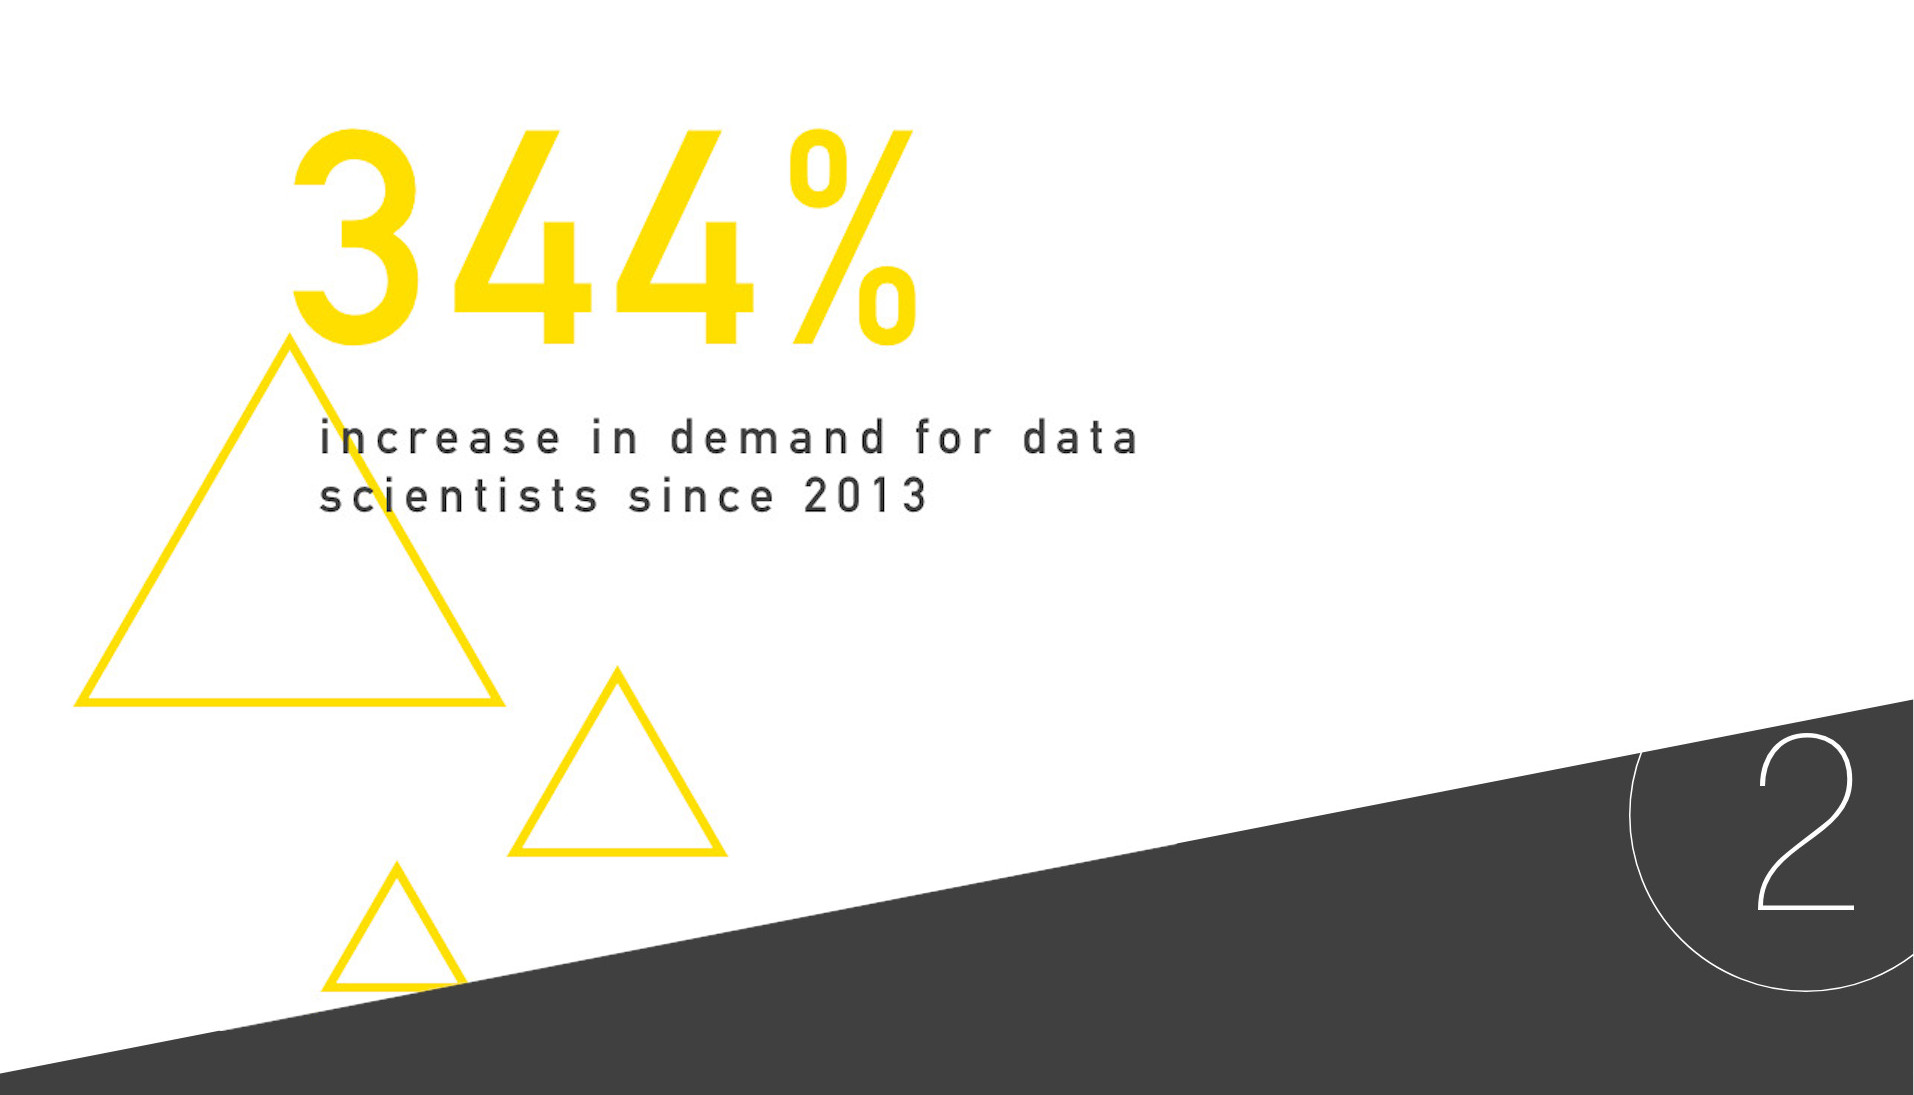 2: 344% increase in demand for data scientists since 2013